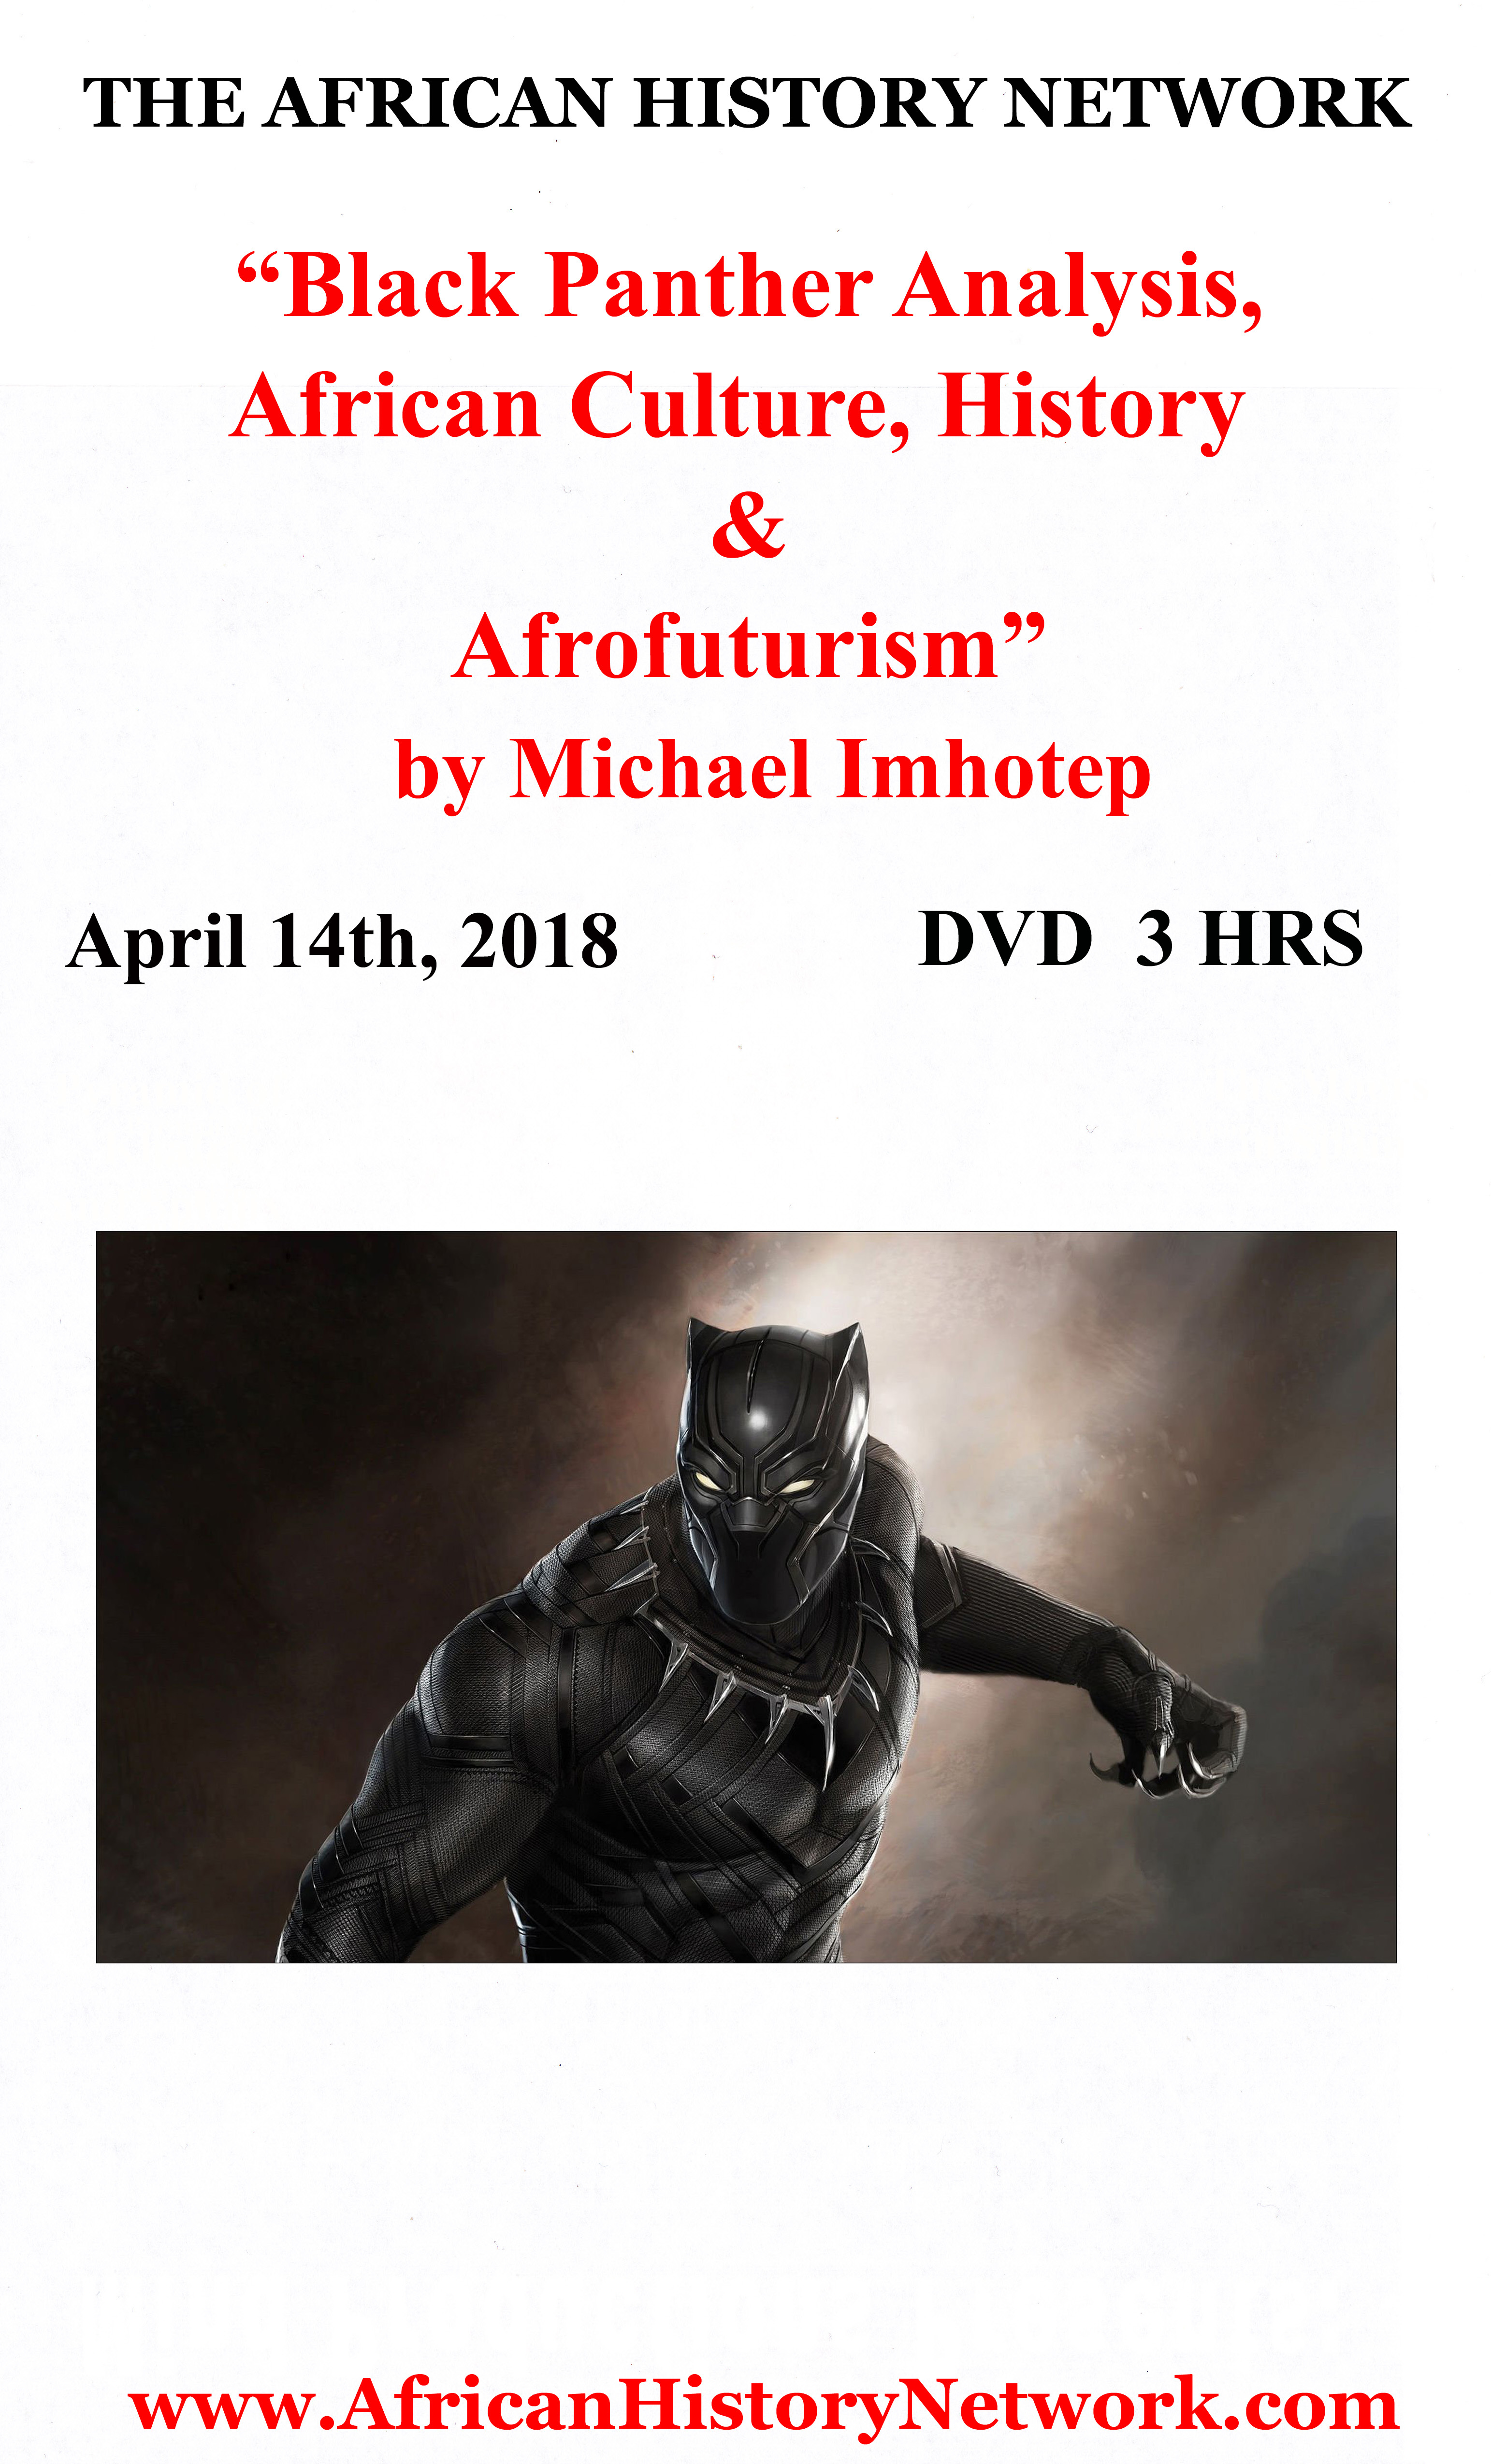 Michael_Imhotep_-_Black_Panther_Lecture_4-13-18_-_DVD_Insert_Front_Label